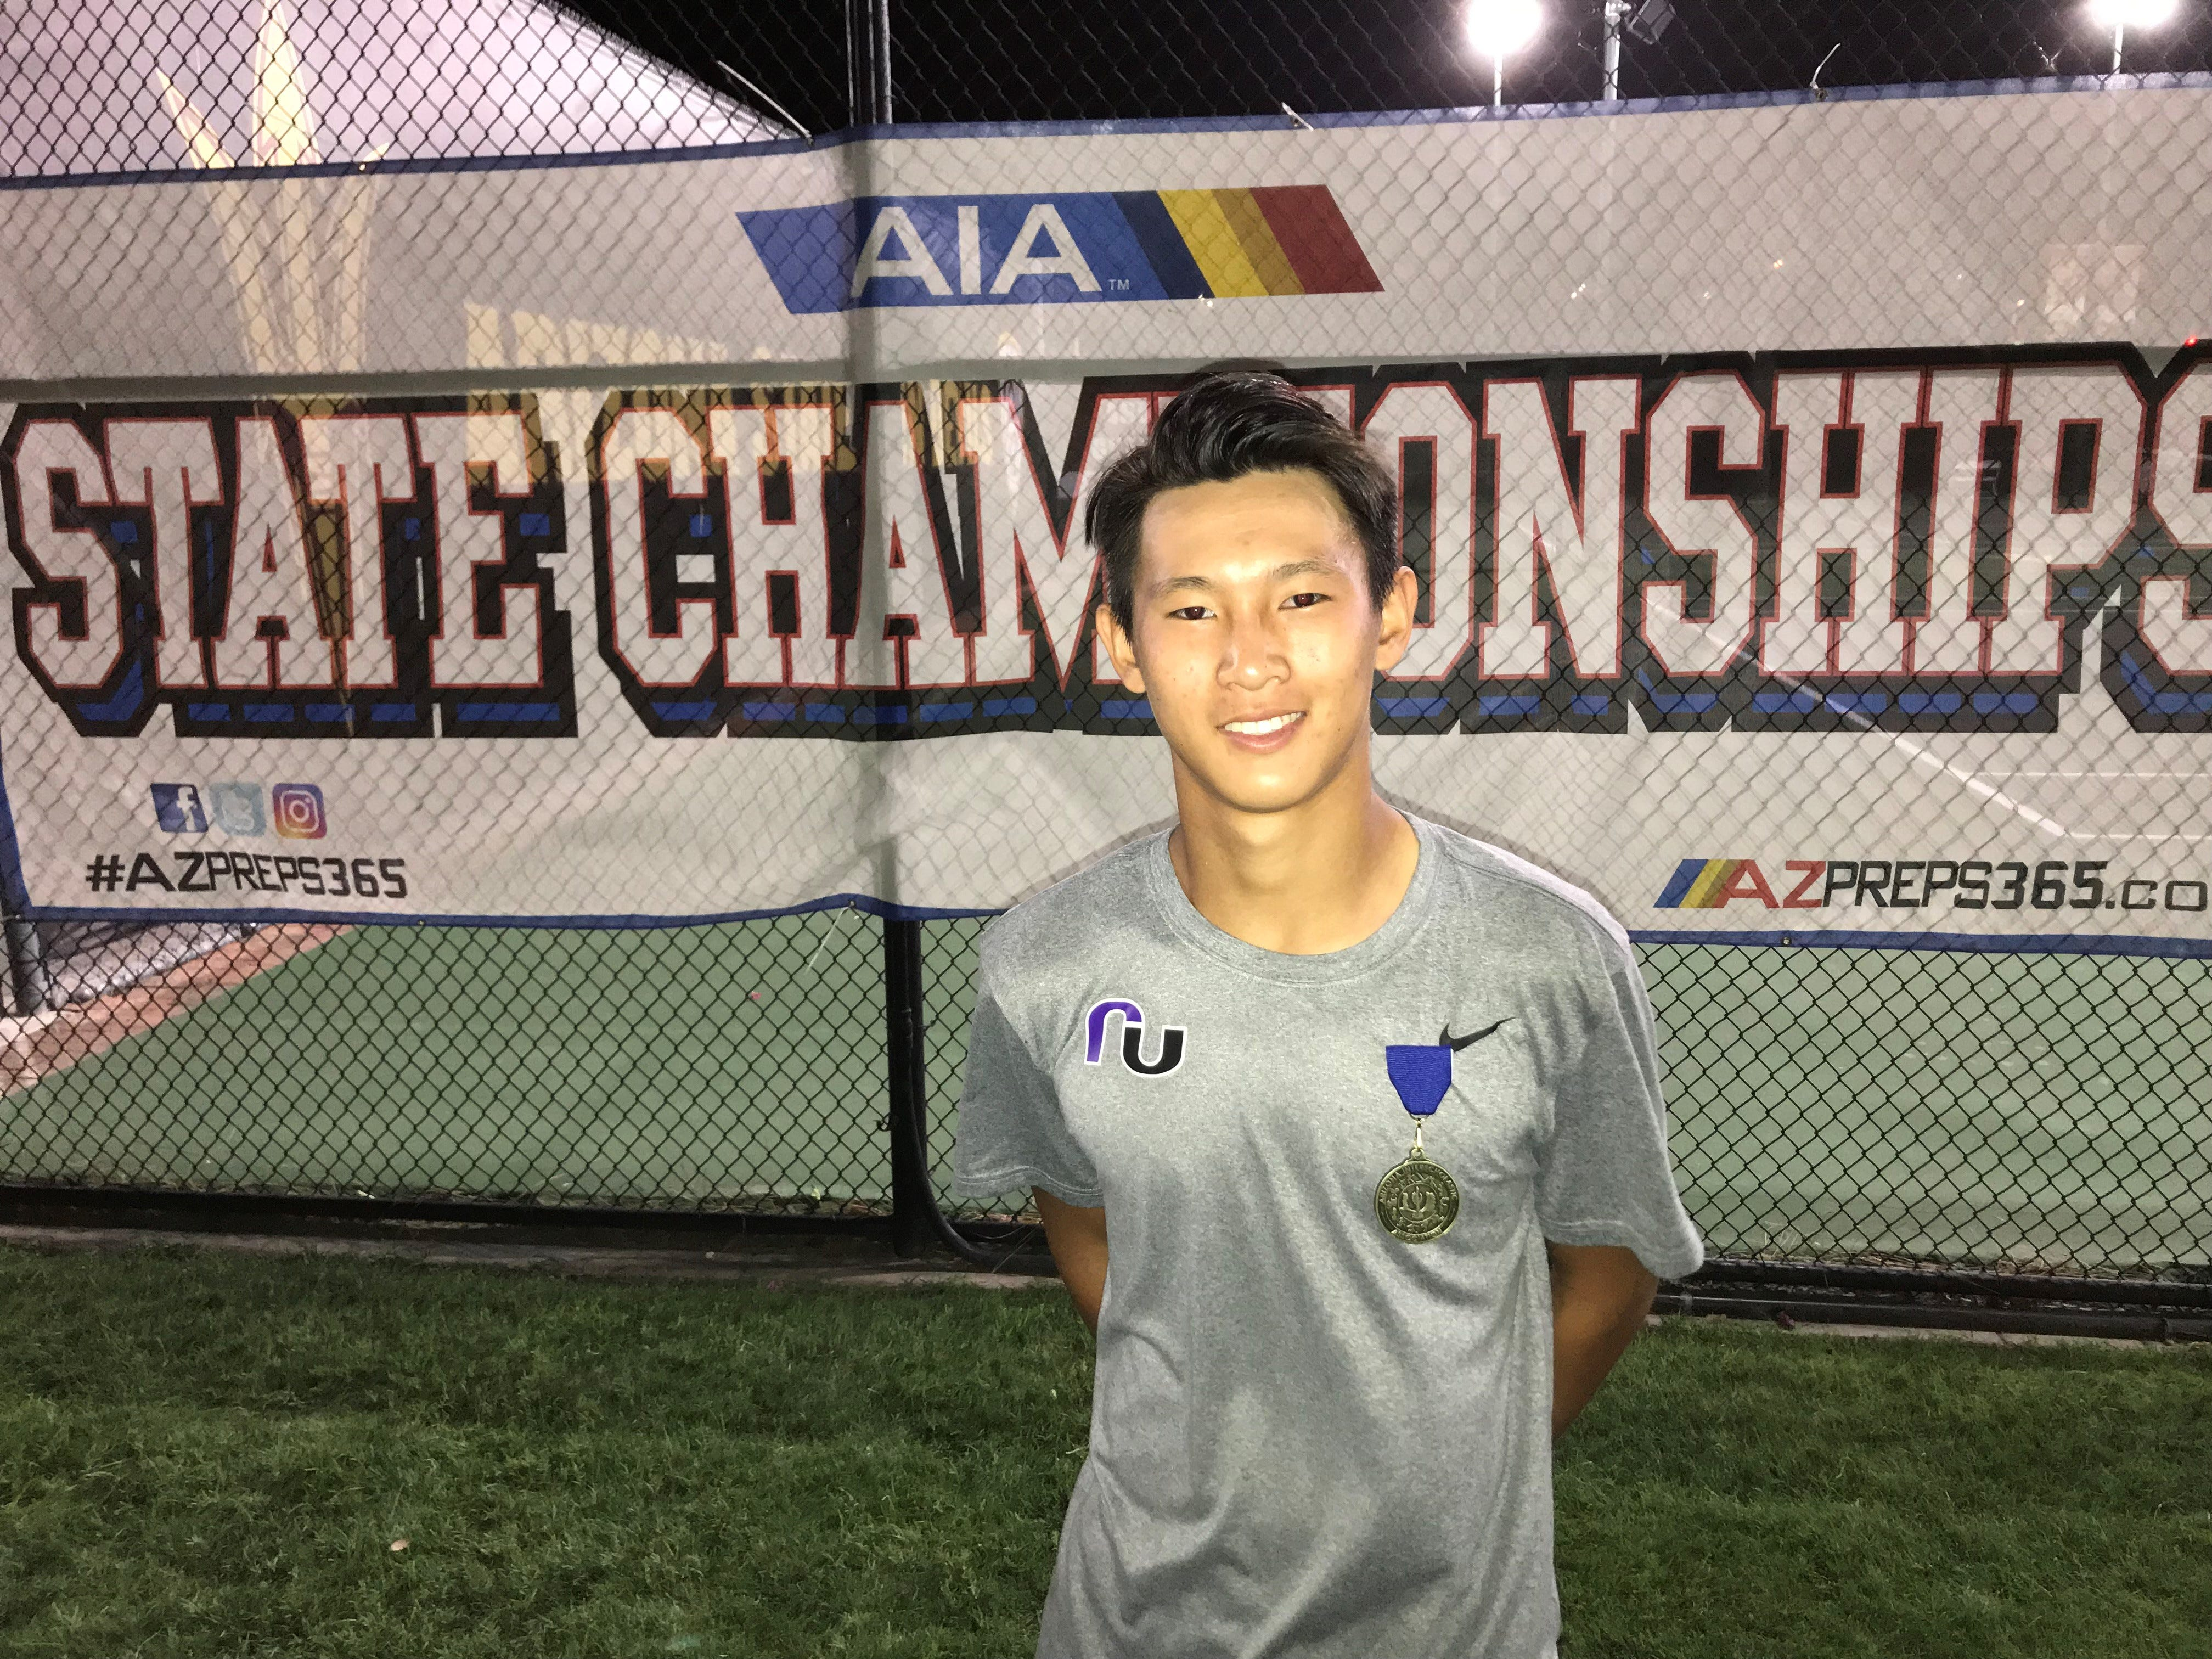 April 29, 2019; Ethan Lee of Rincon/University wins his first Division I singles state title at ASU Whiteman Center.